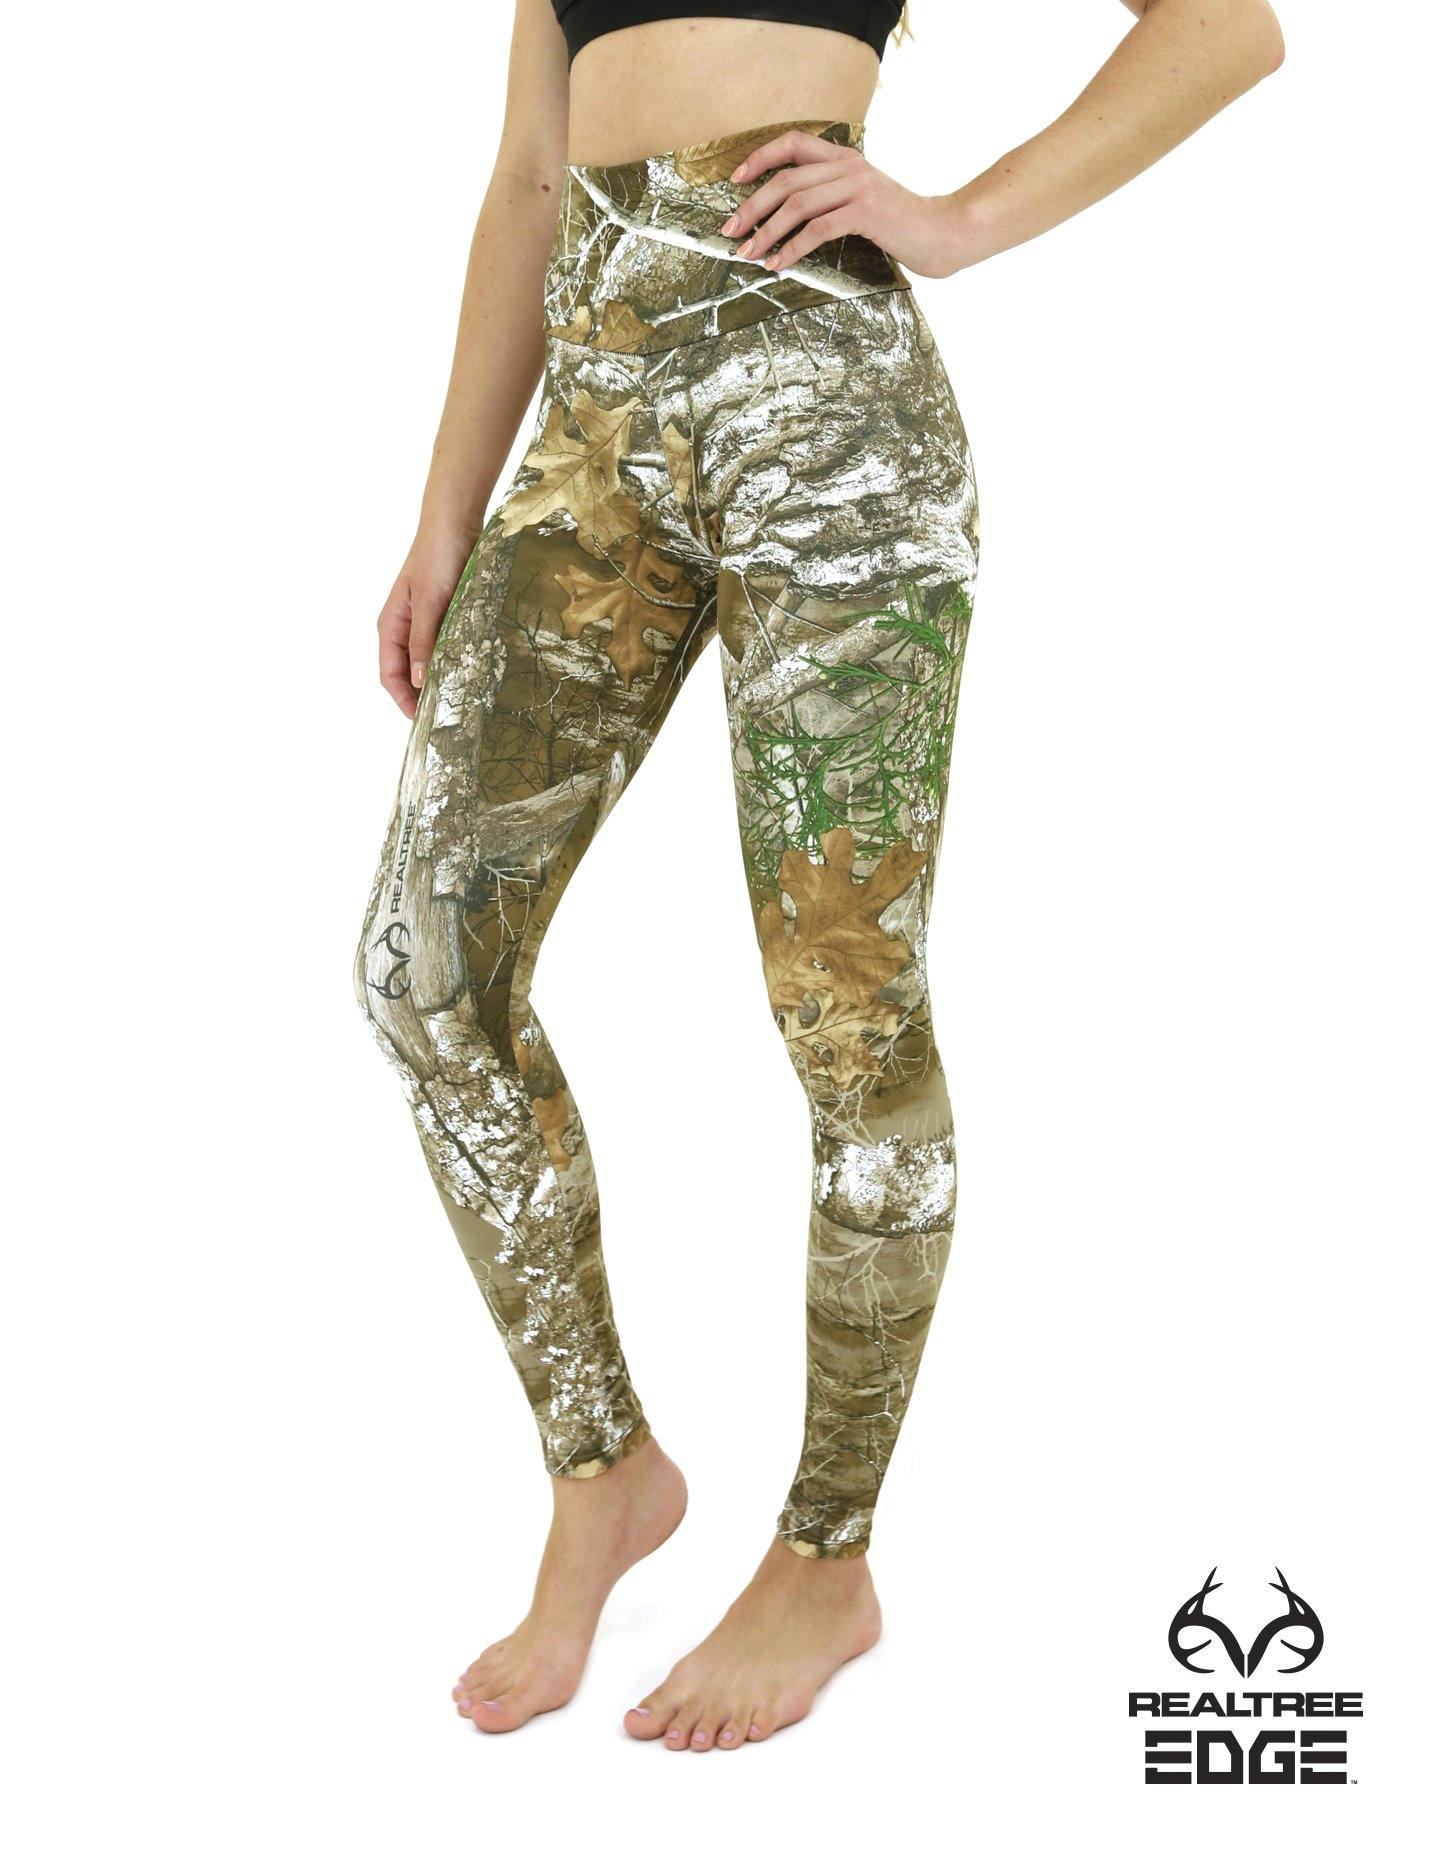 Apsara Leggings High Waist Full Length, Realtree Edge